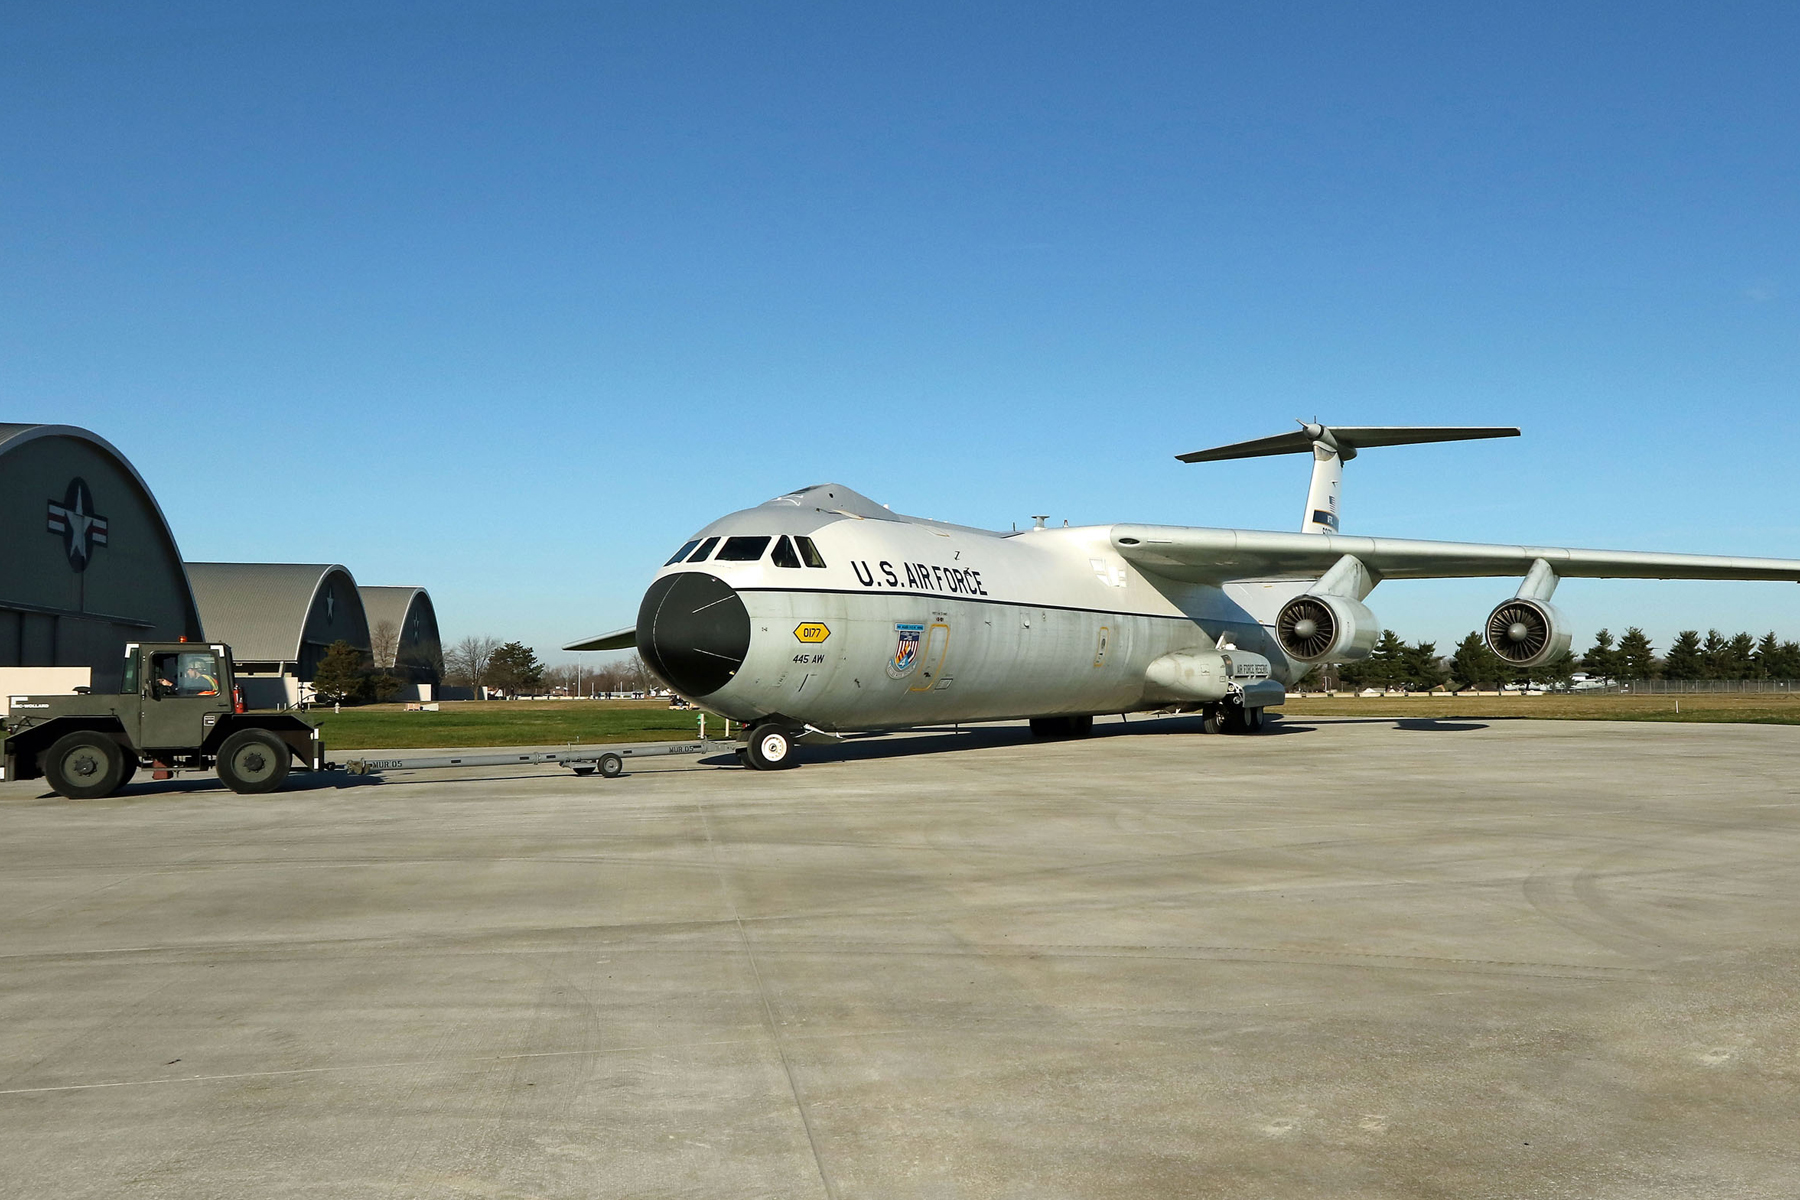 Restoration staff move the Lockheed C-141C Hanoi Taxi into the new fourth building at the National Museum of the U.S. Air Force on Dec. 16, 2015. (U.S. Air Force photo by Don Popp)